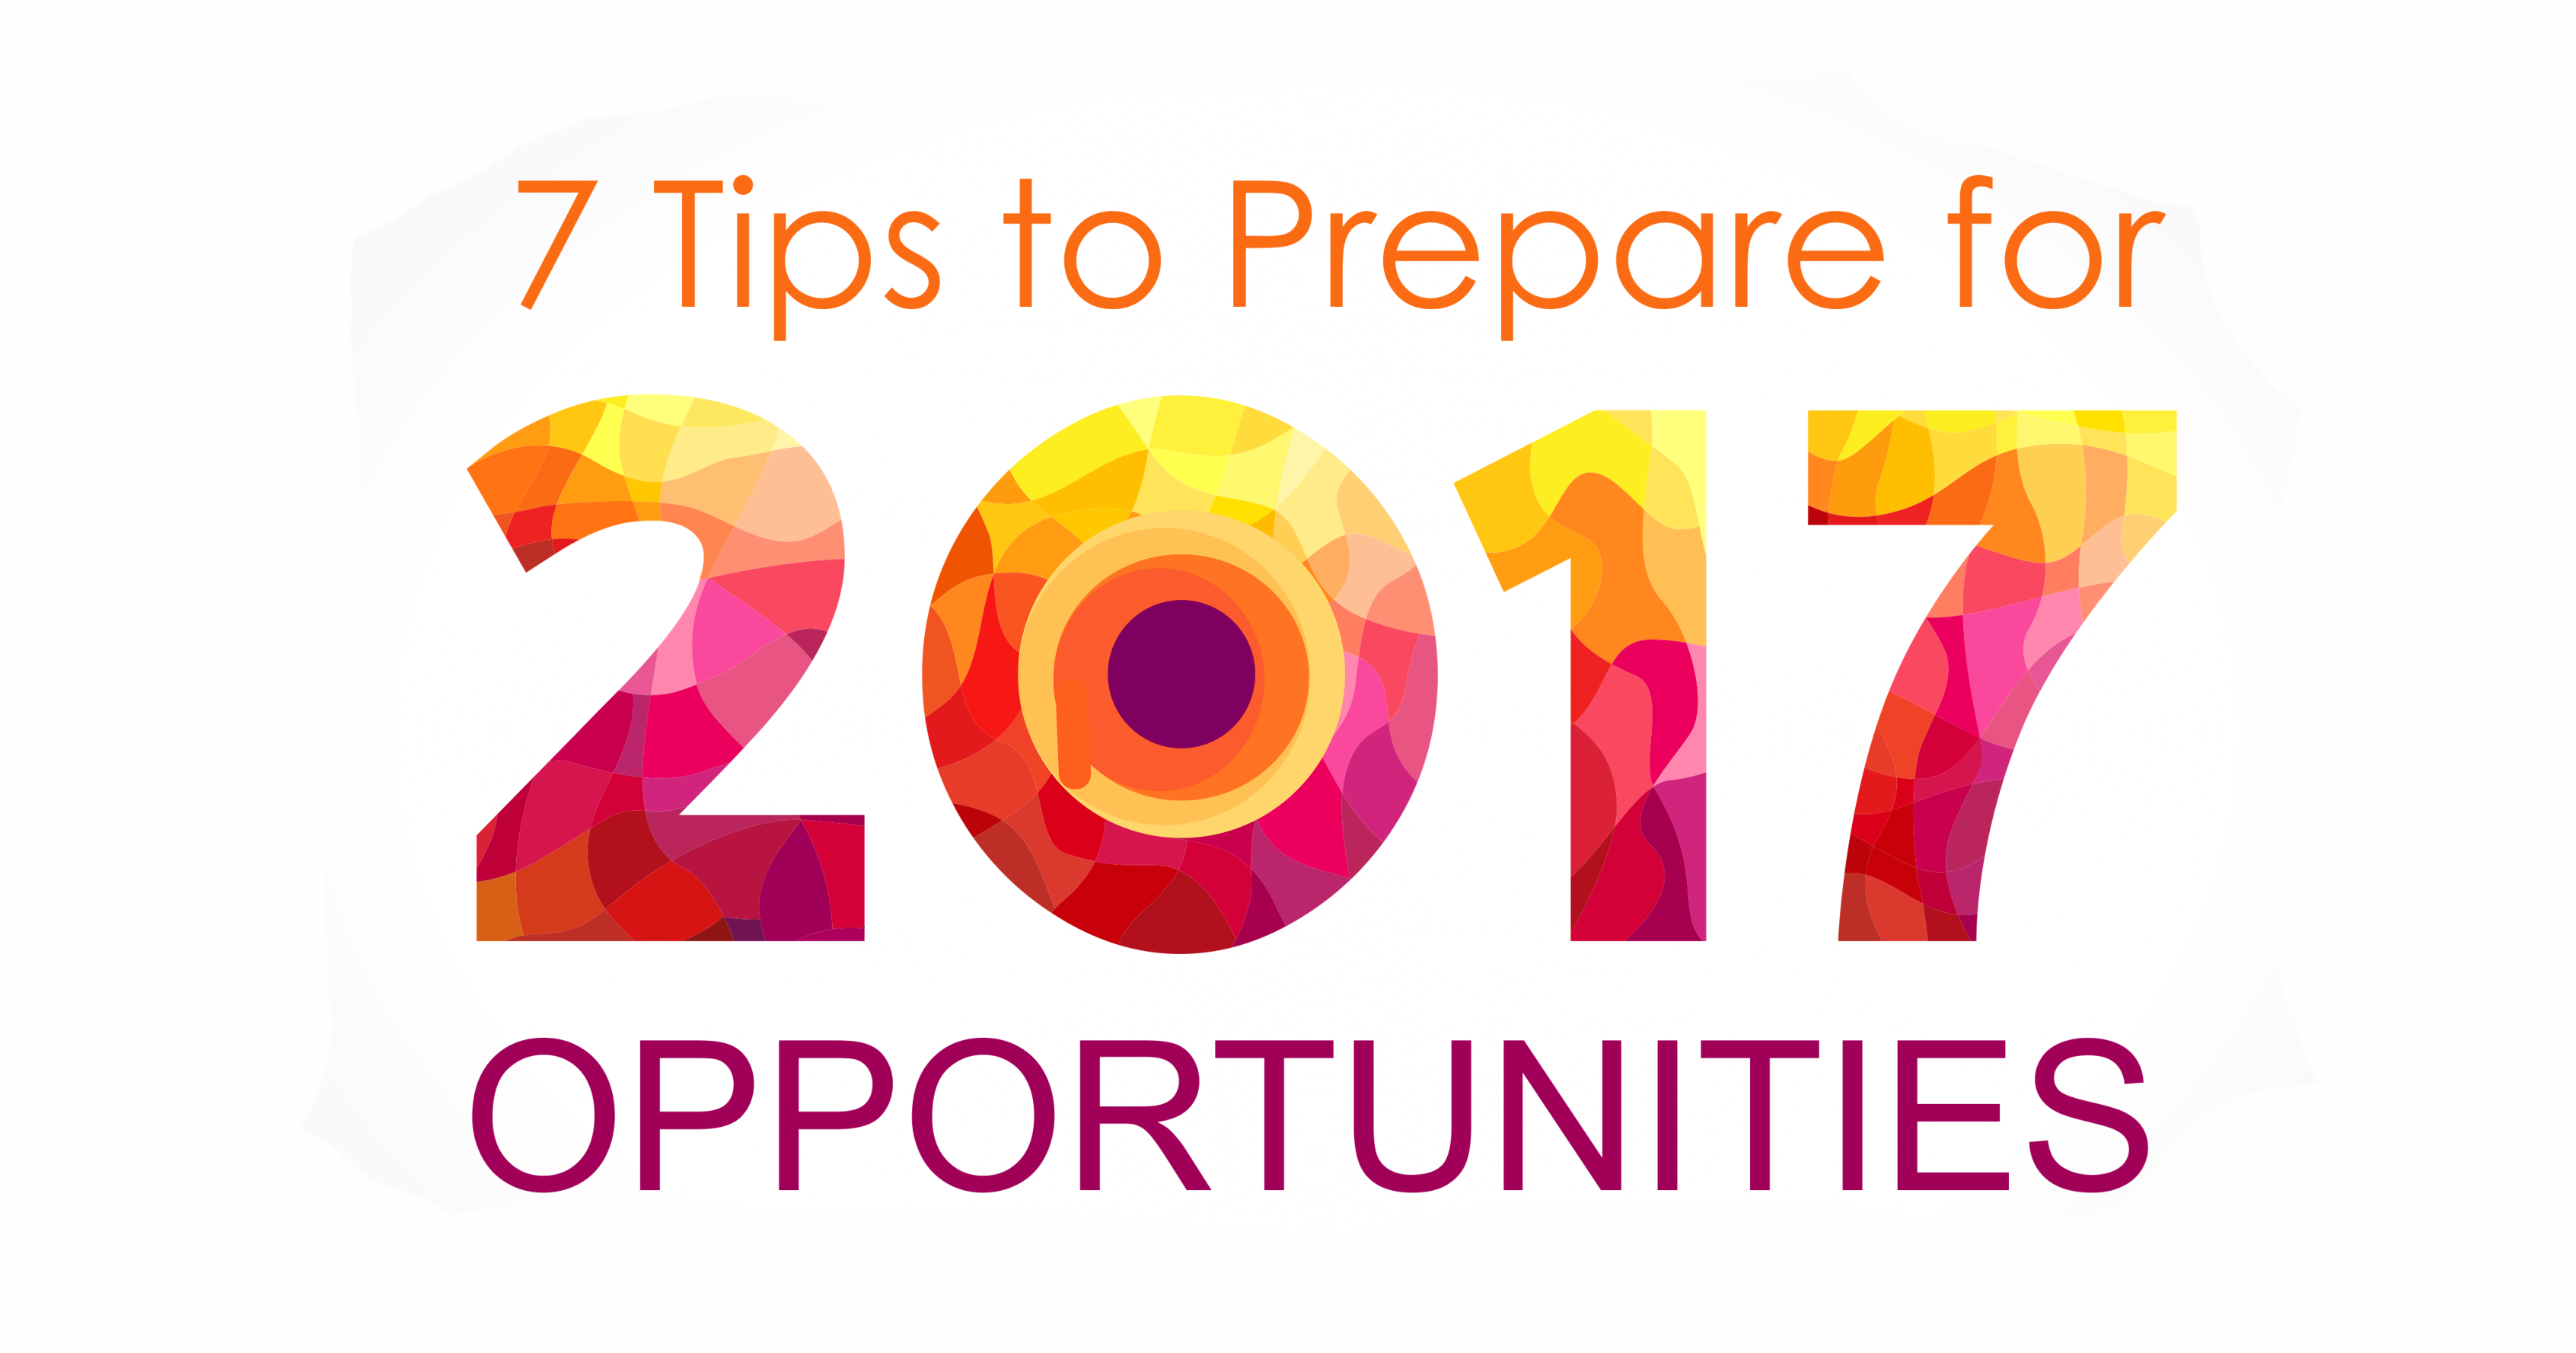 7 tips to prepare for 2017 opportunities http://pccca/org